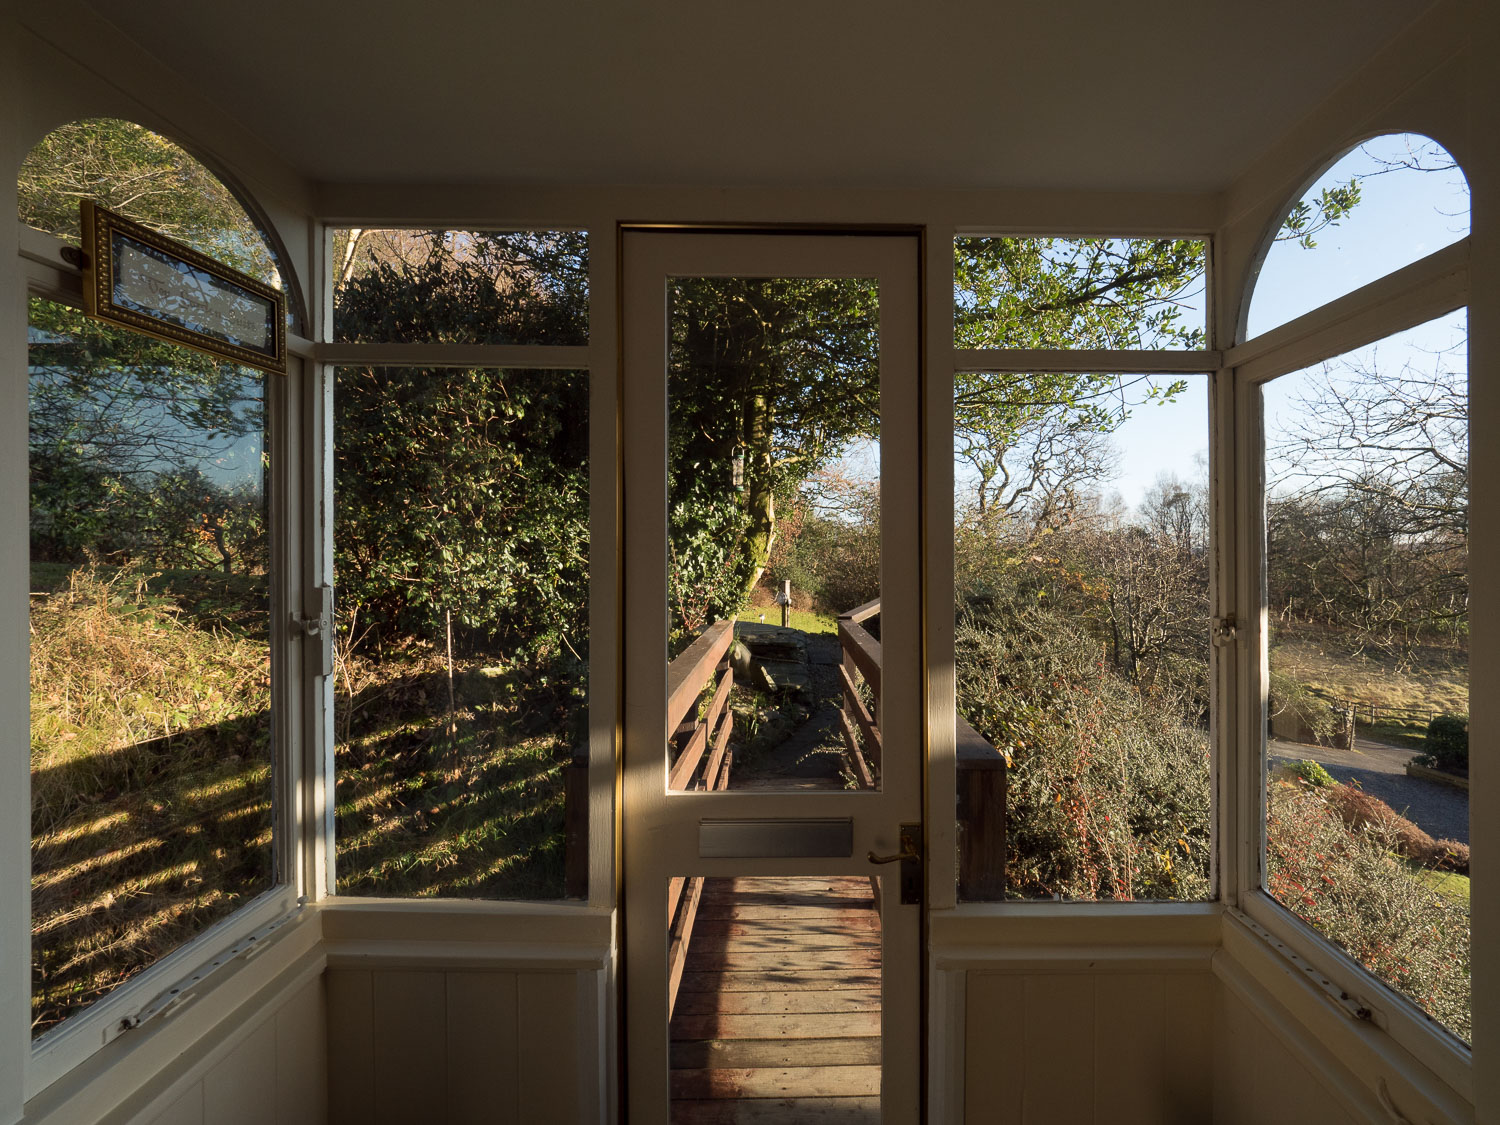 The lounge has a panoramic glass enclosure which on a fine day acts like a light box. A myriad of visiting birds can usually be seen.